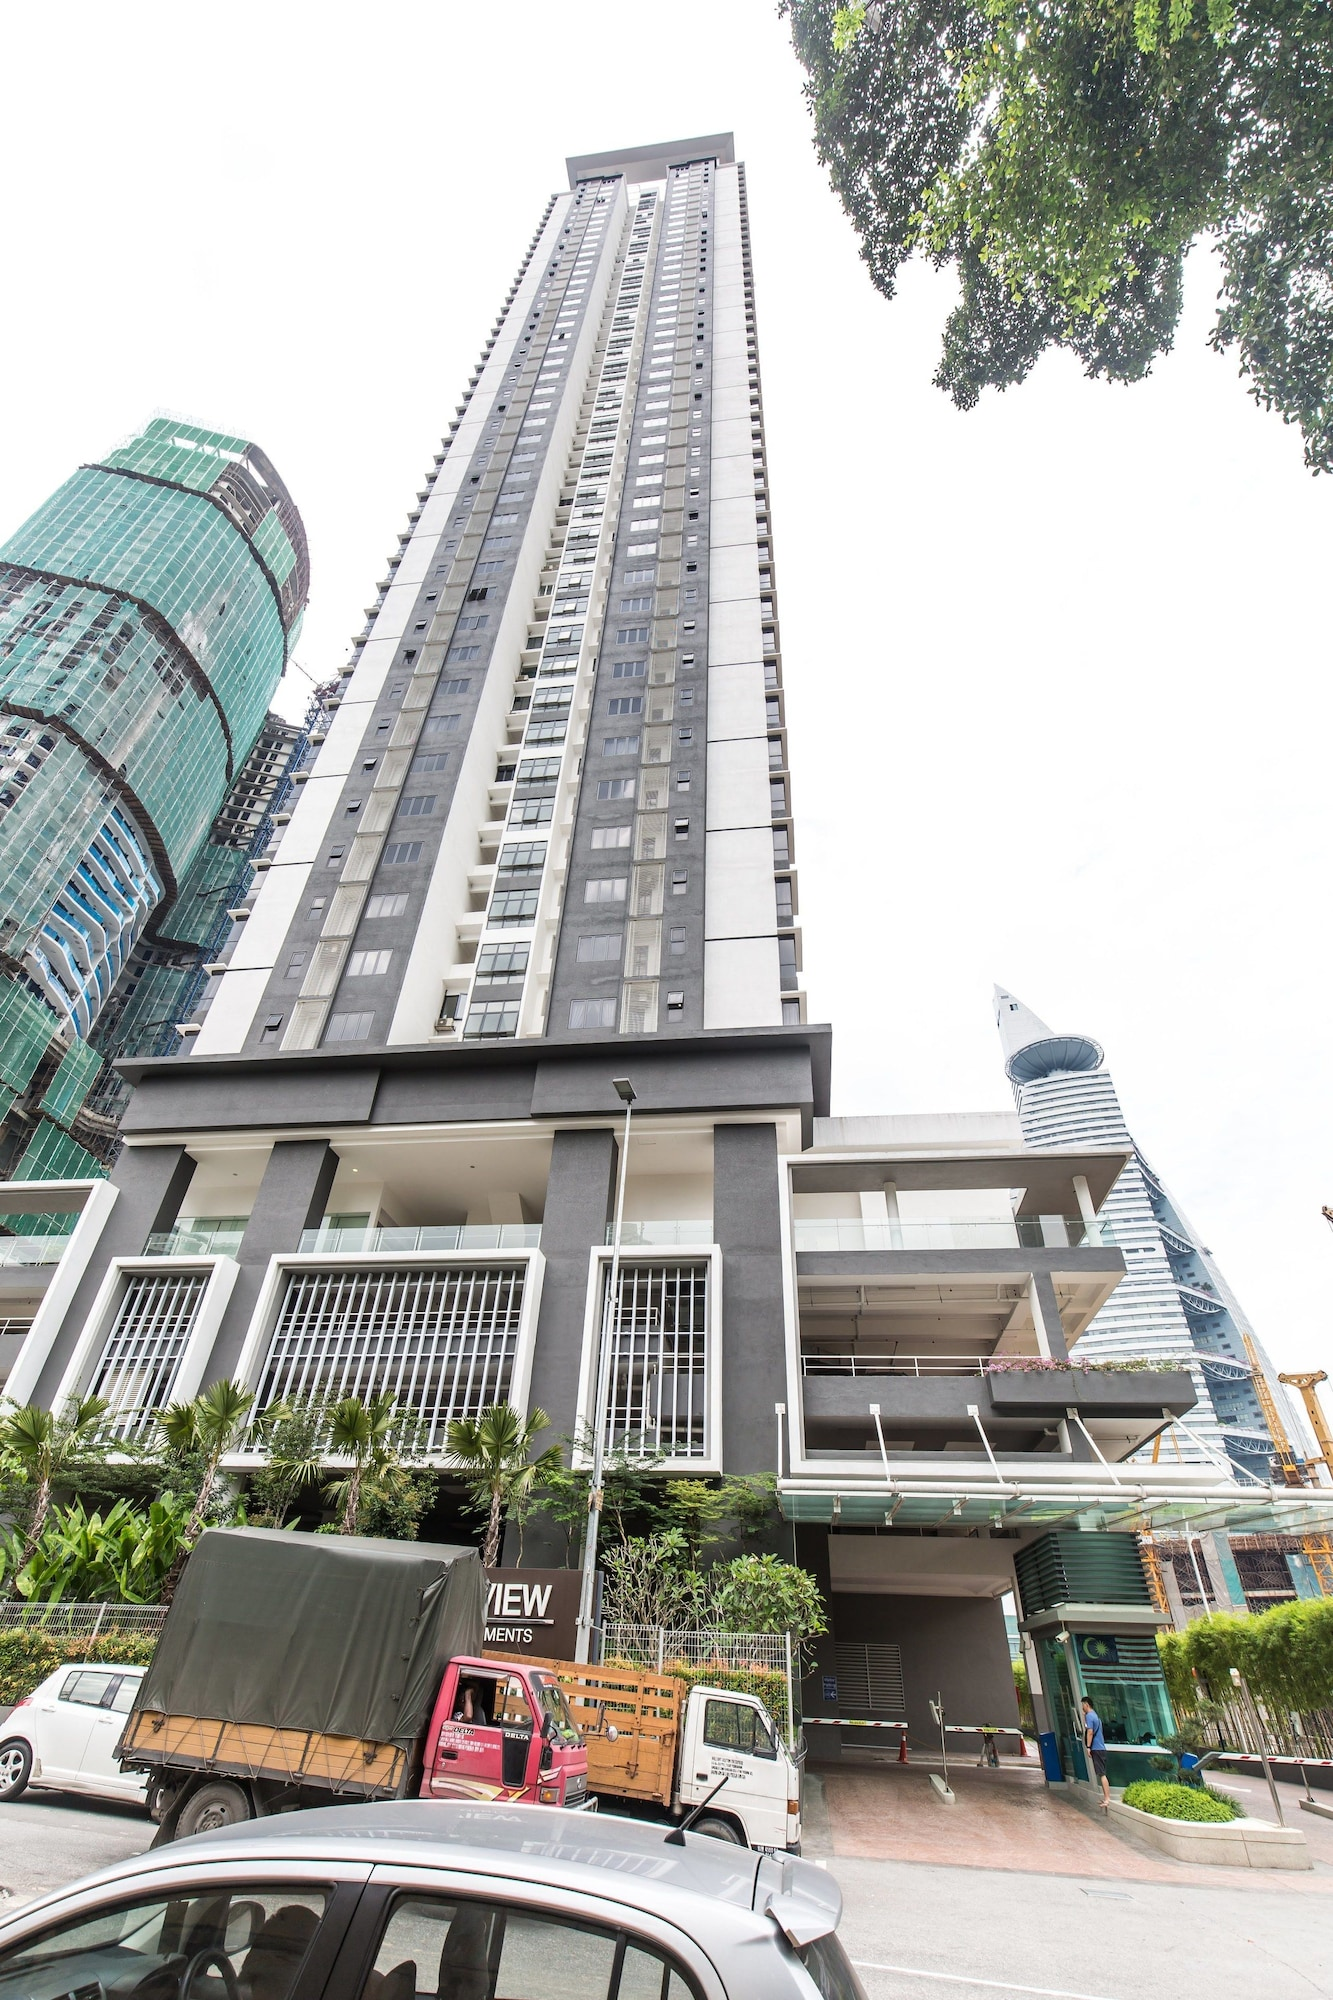 Southview Suites by Subhome, Kuala Lumpur